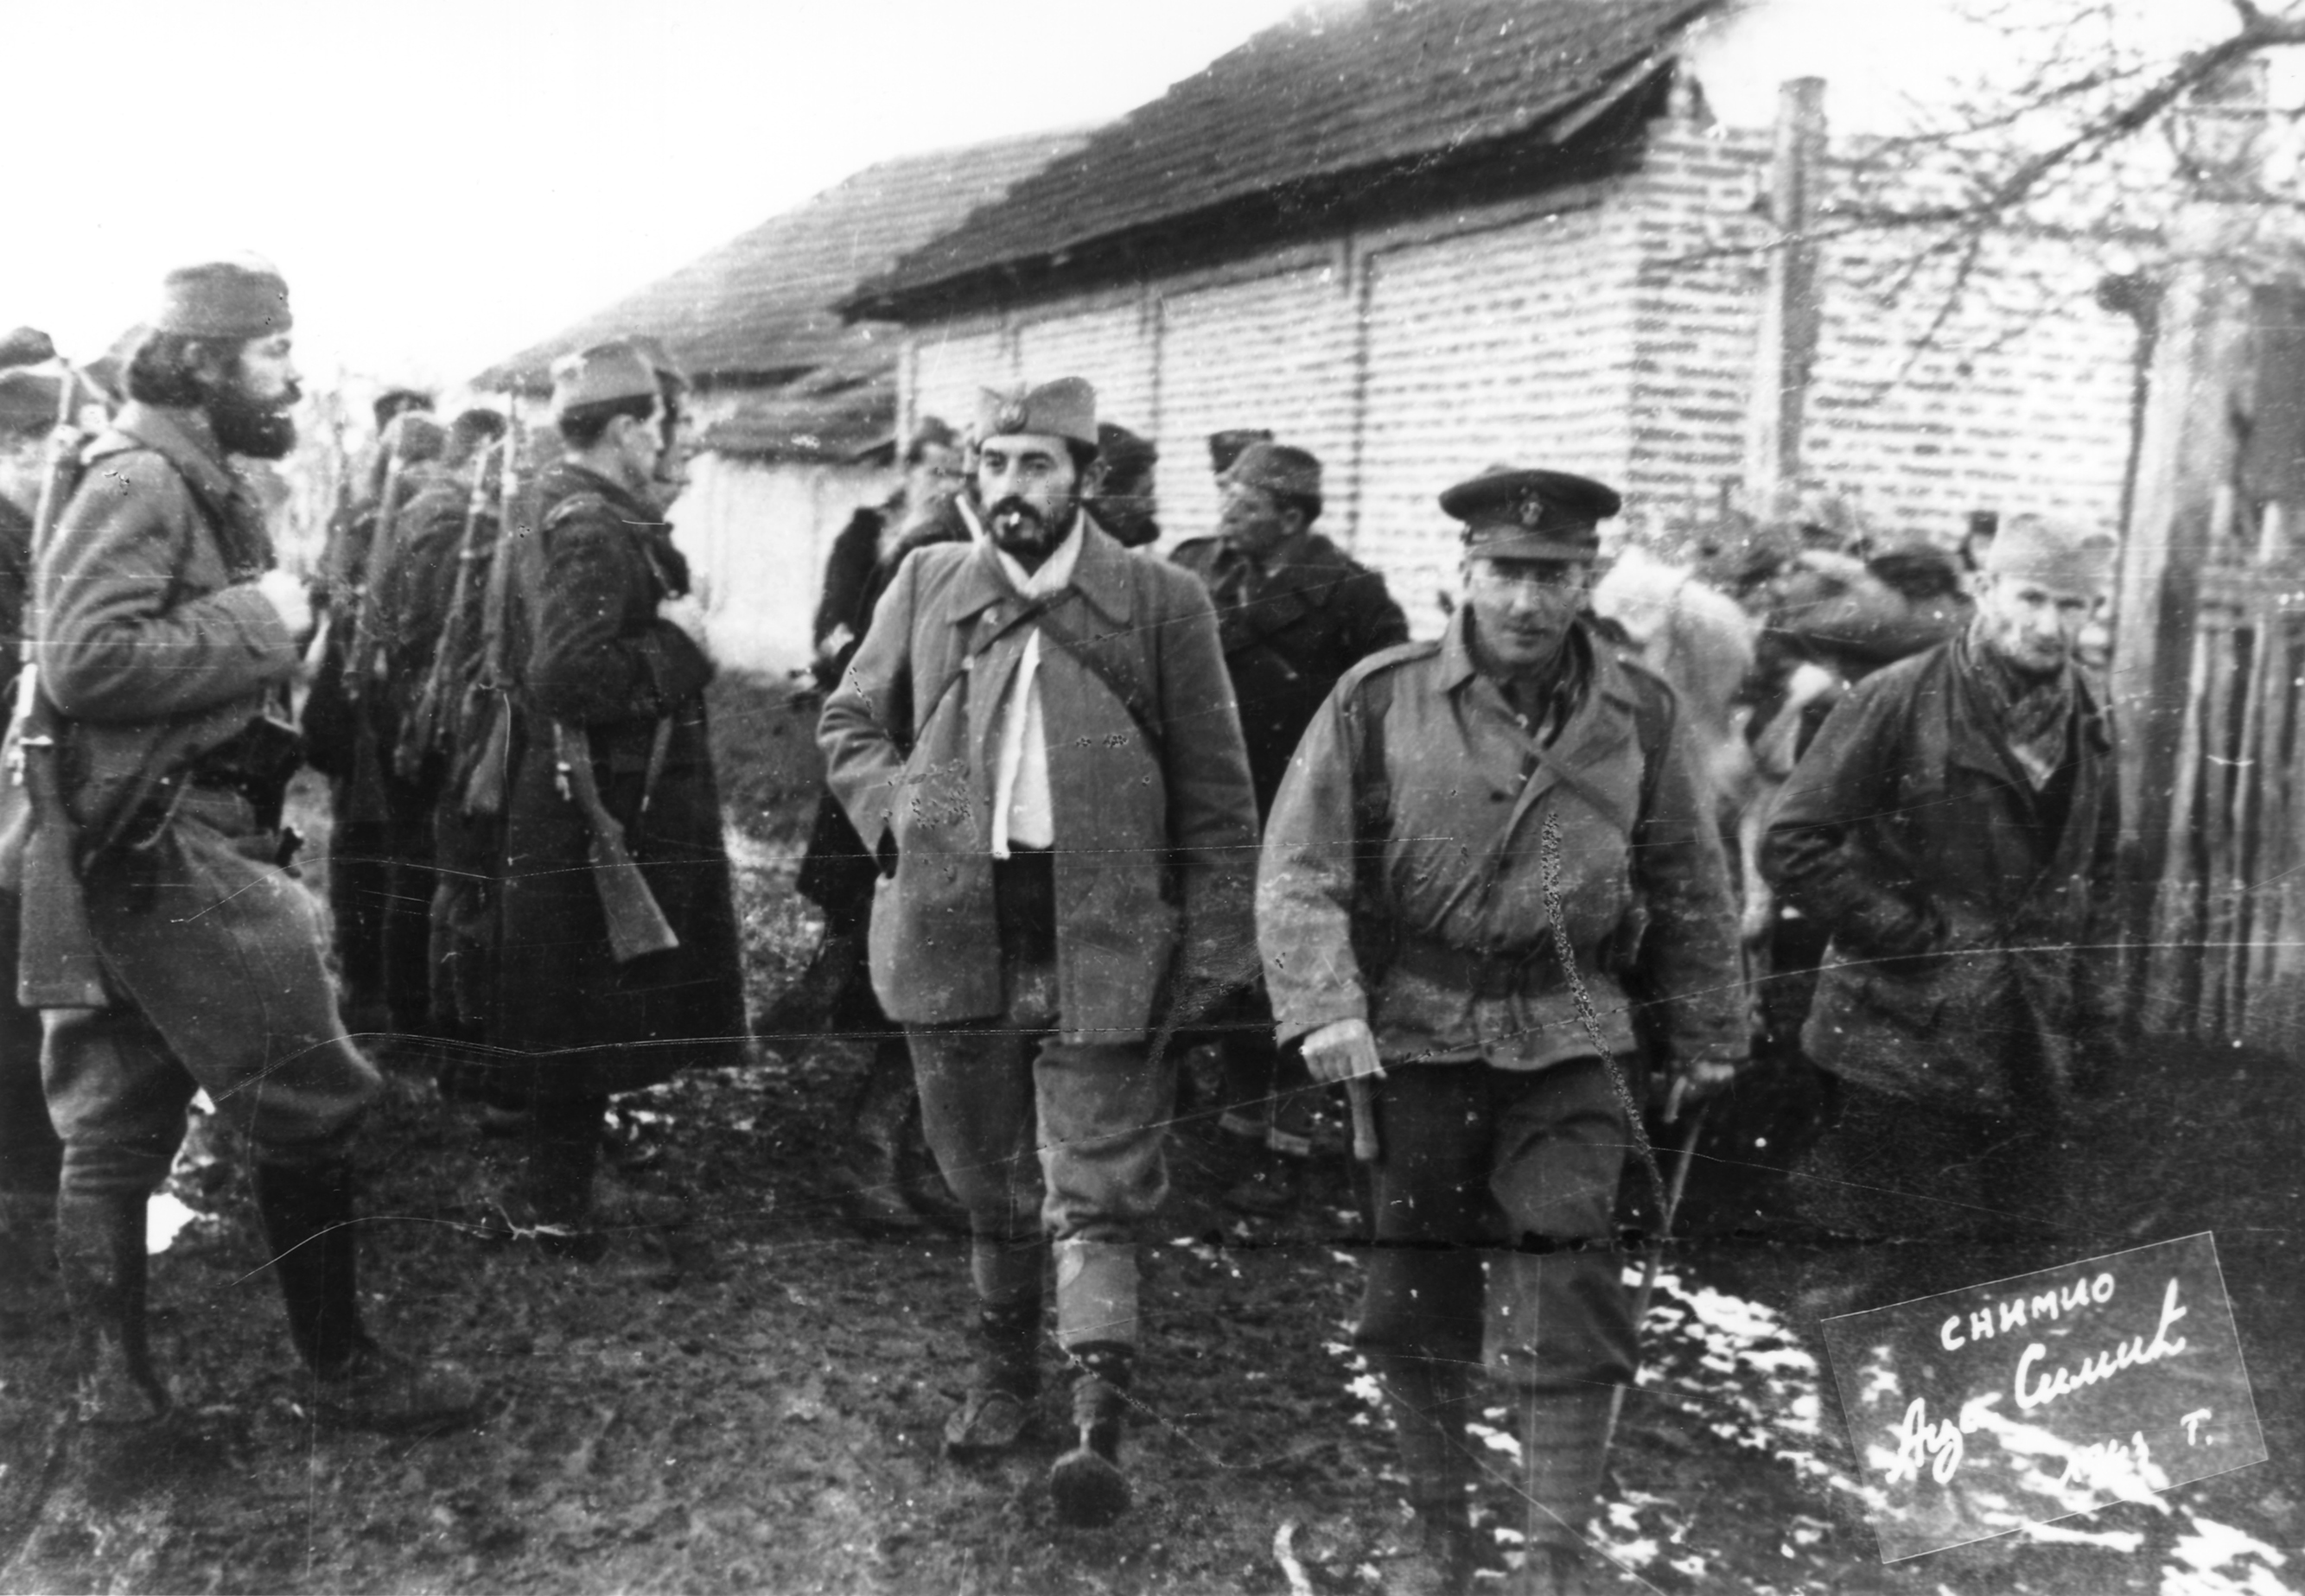 End of November 1943, near Cacak: British Gen. Charles Armstrong and CO of the 2nd Ravna Gora Corps, Capt. Predrag Rakovic